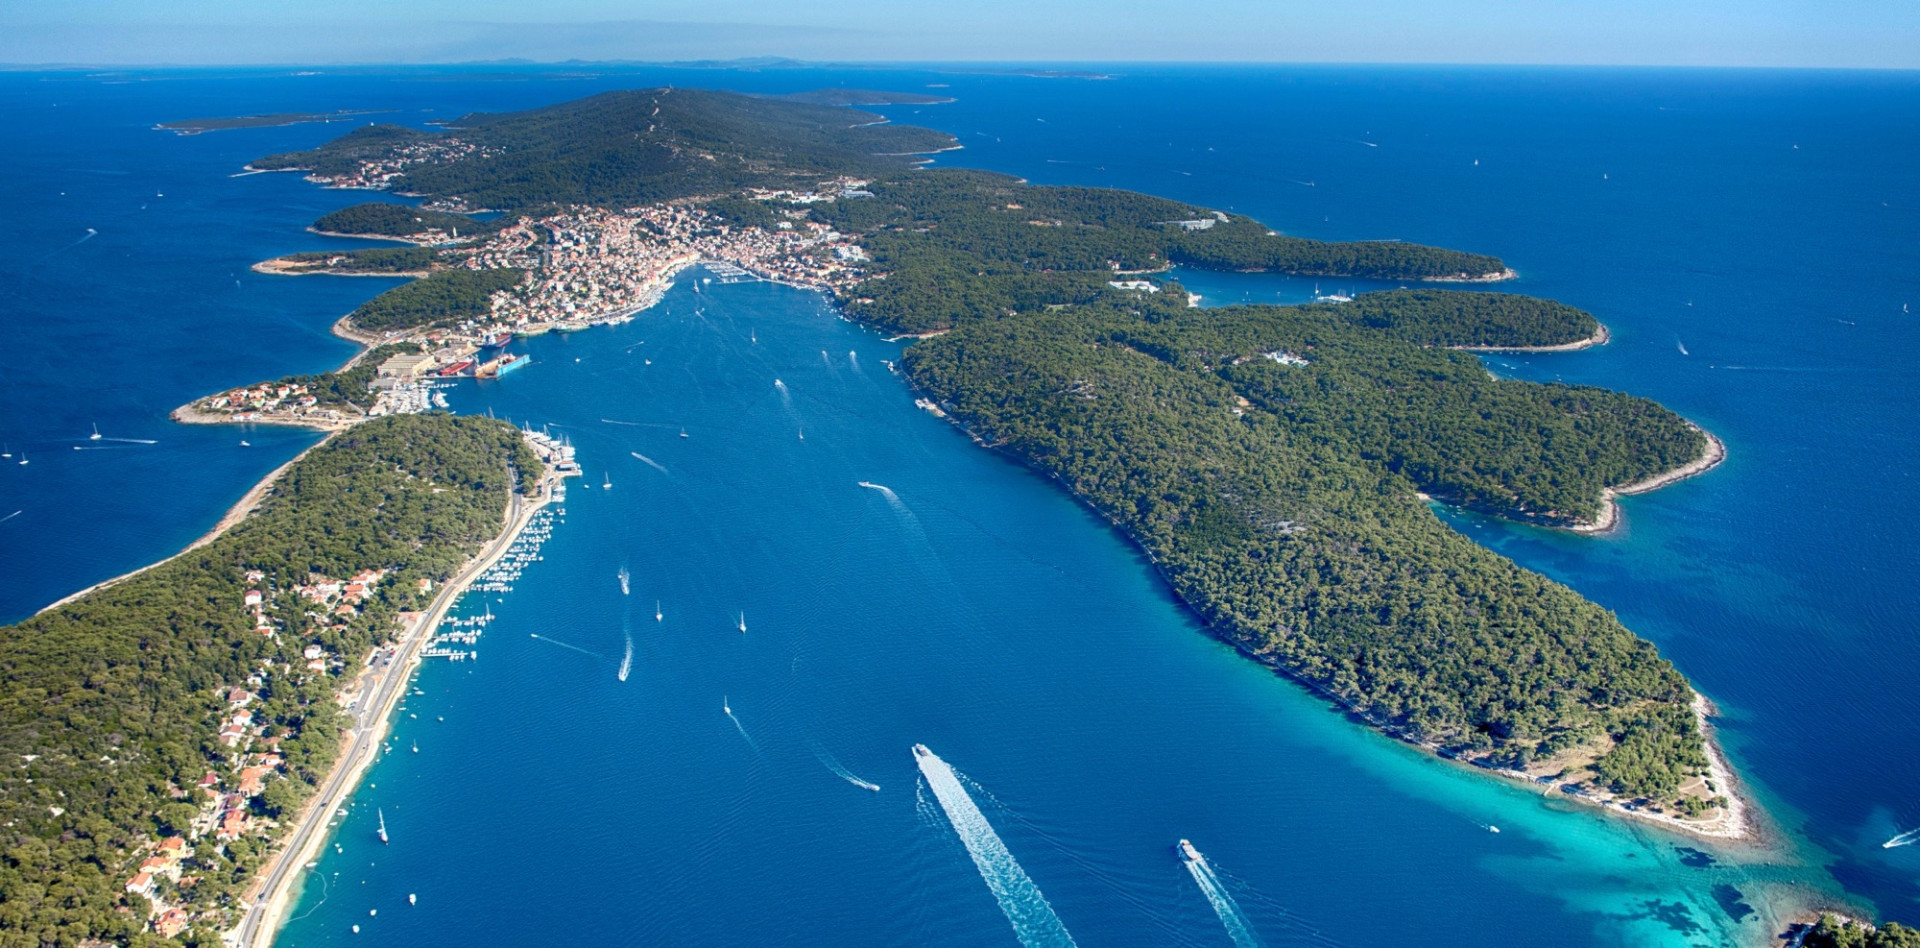 Vacation villas, apartments and hotels in Croatia - Charming Croatia